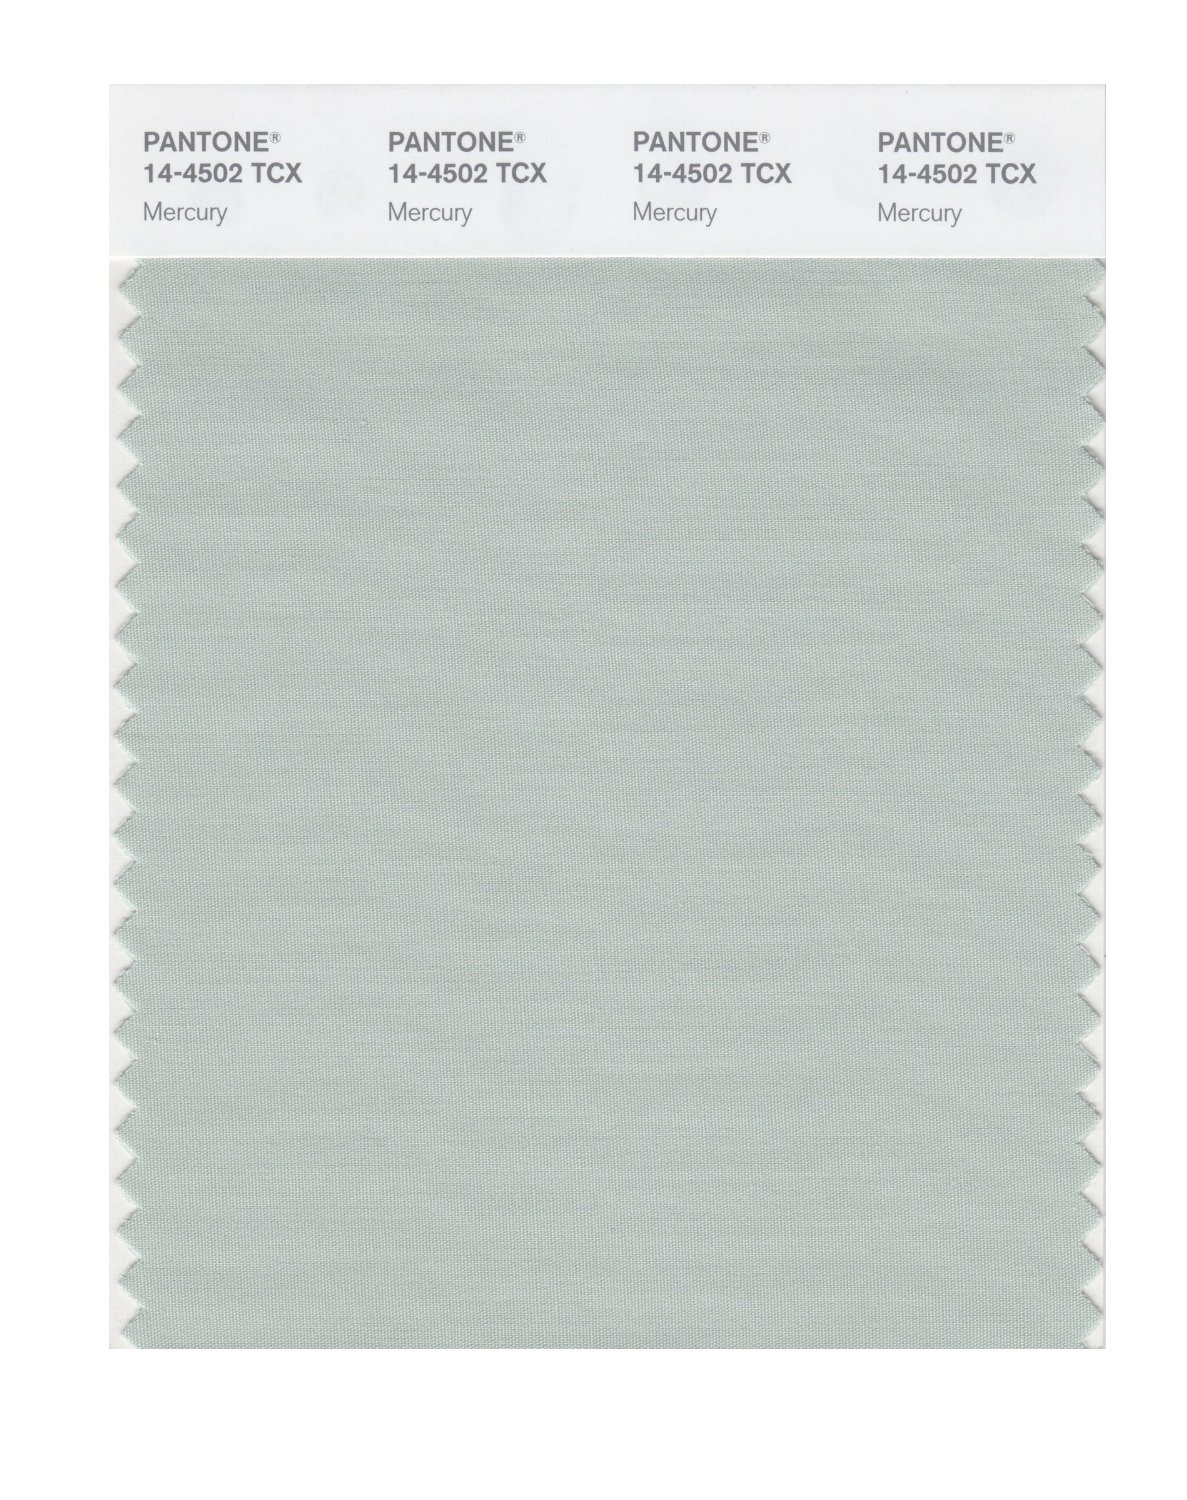 Pantone Smart Swatch 14-4502 Mercury